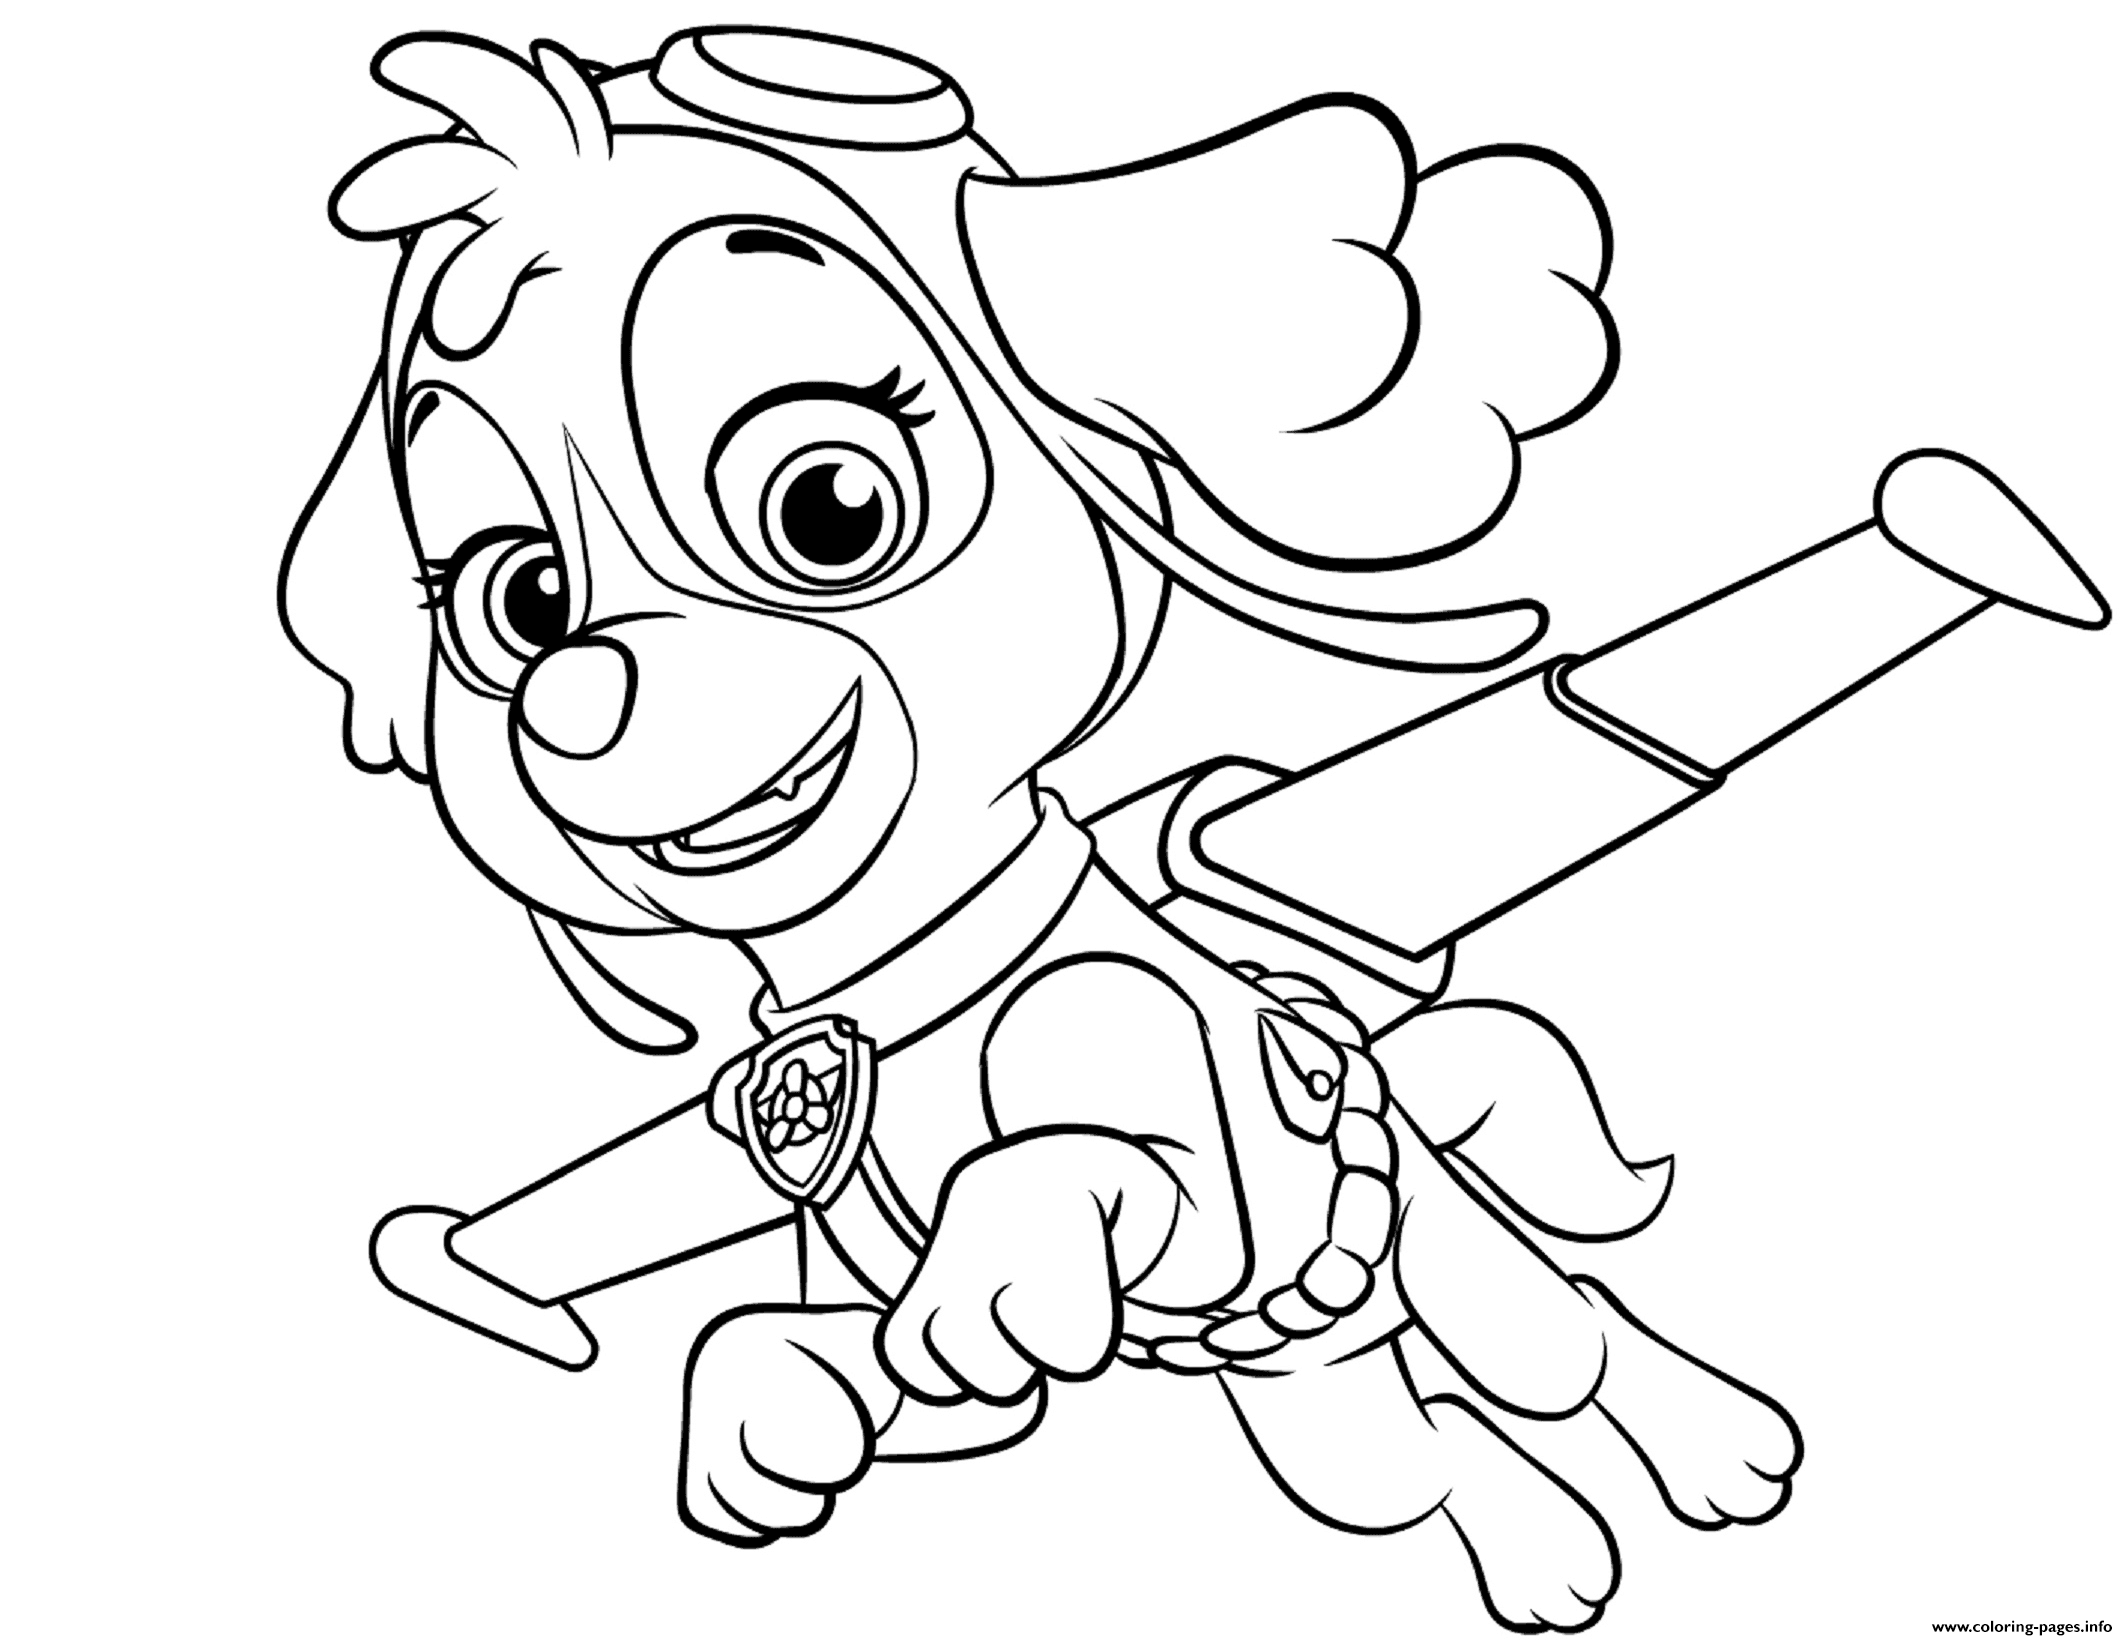 Skye Flying Paw Patrol Coloring Pages Printable